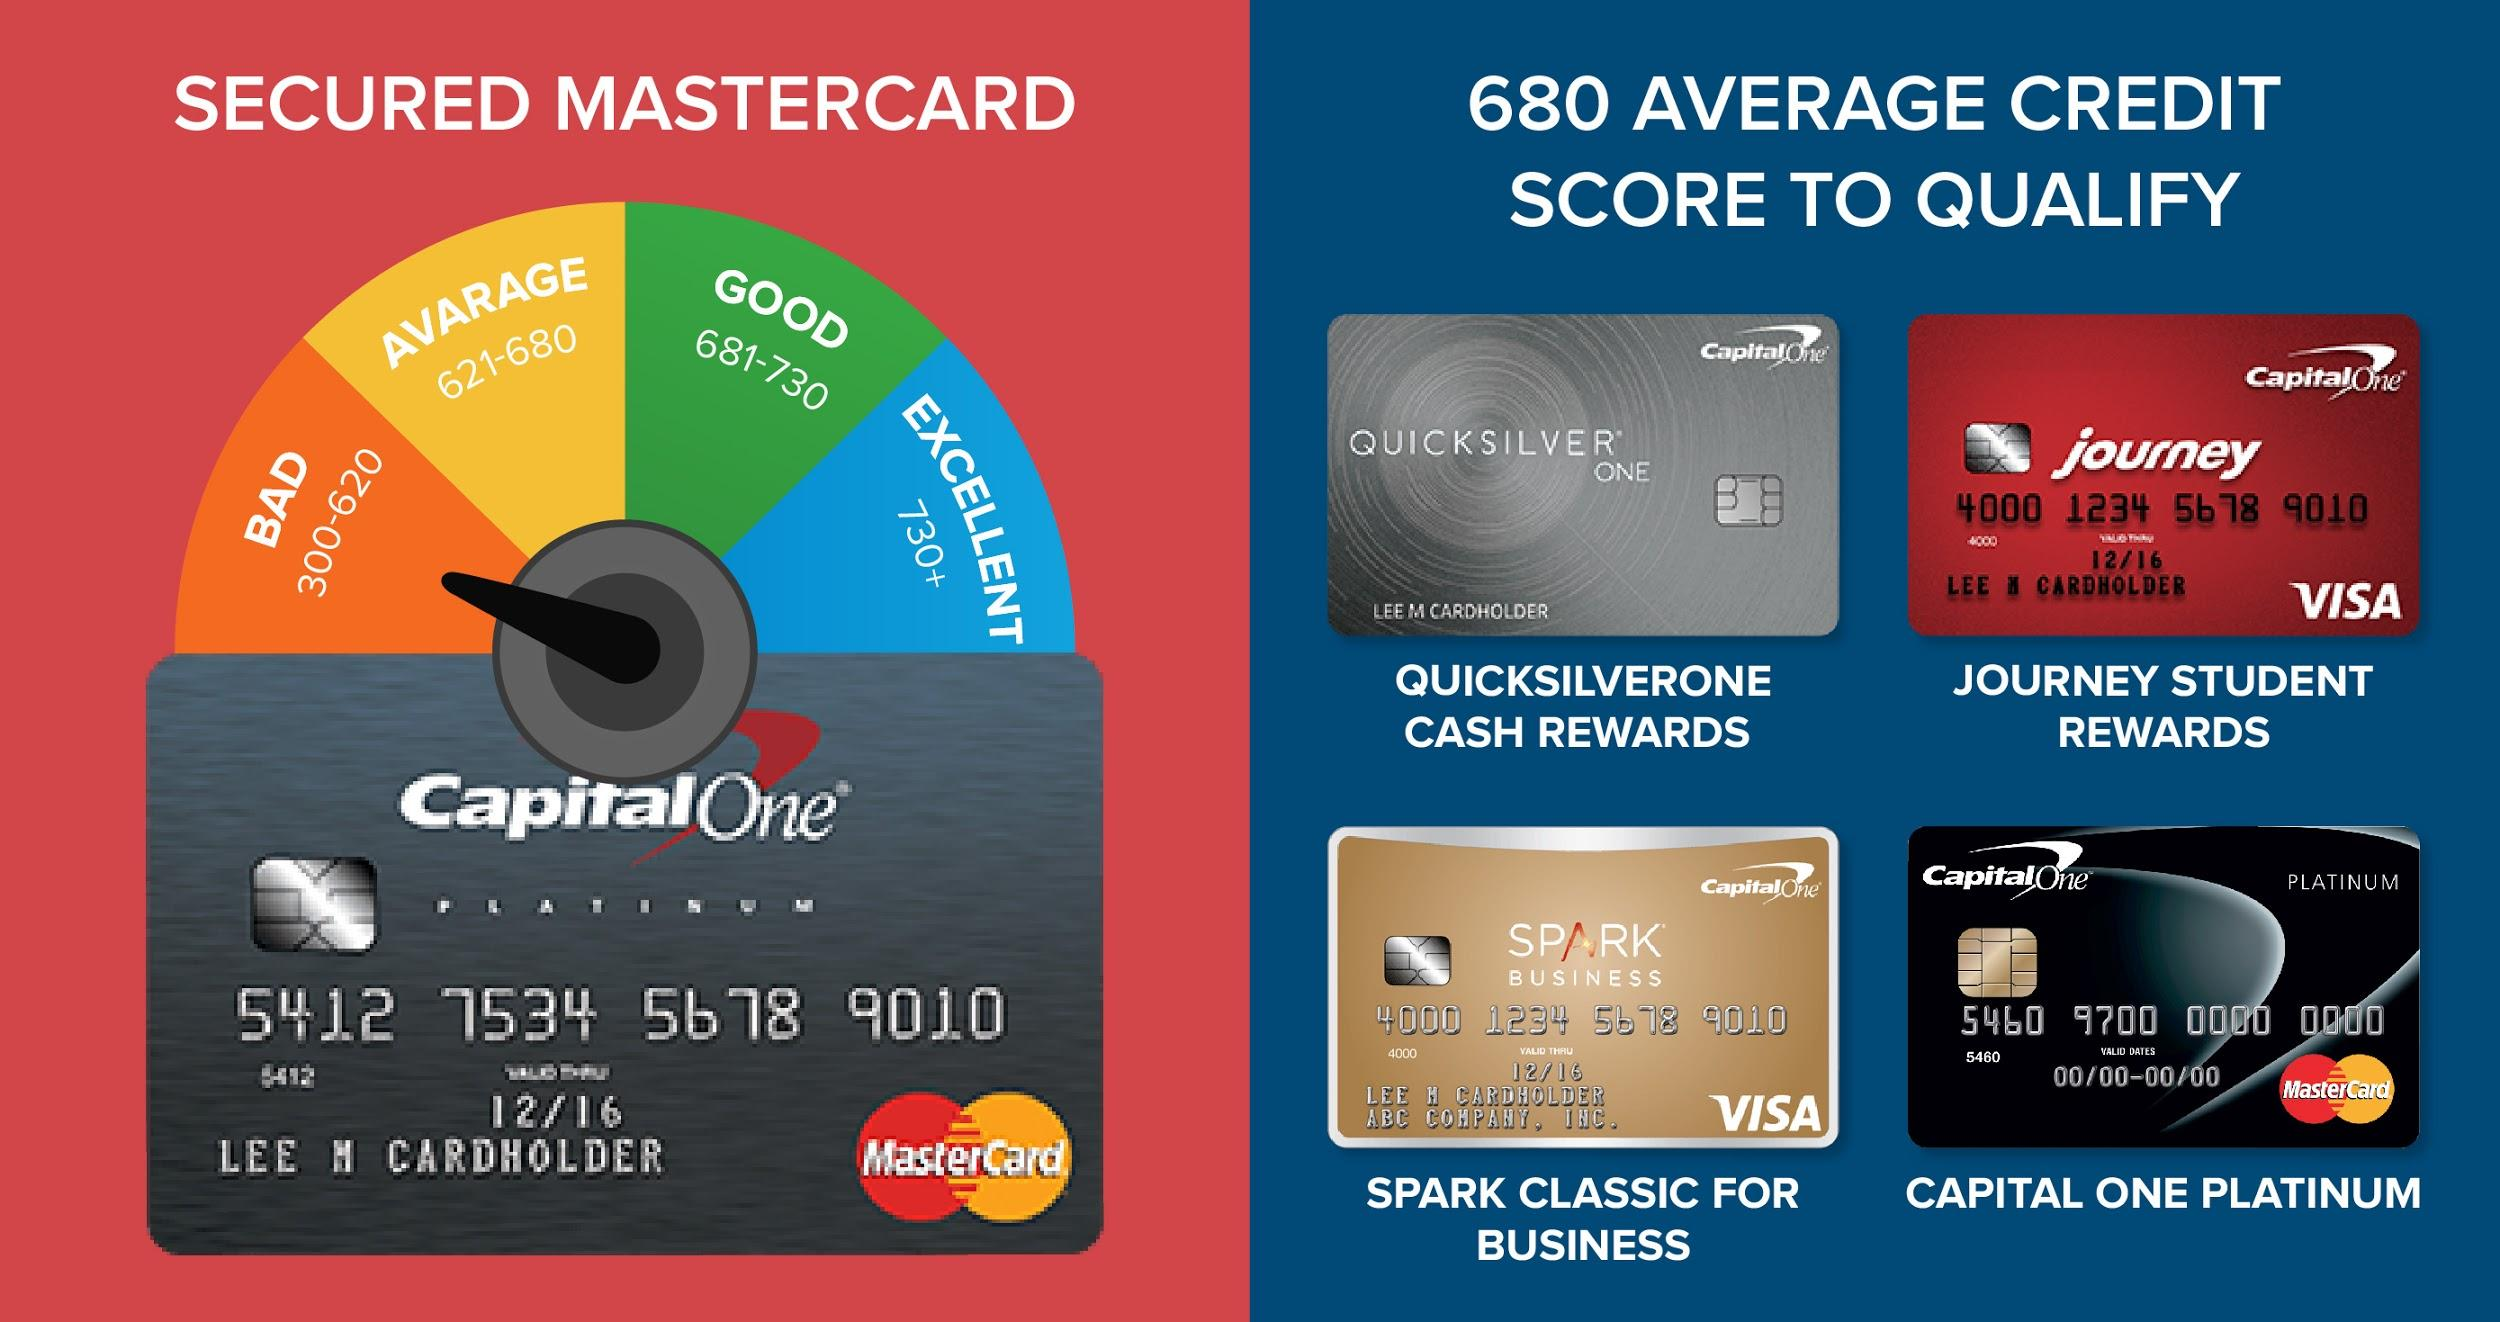 Credit scores and capital one what you need for each card what is the minimum credit score one should have before applying for any capital one card magicingreecefo Images